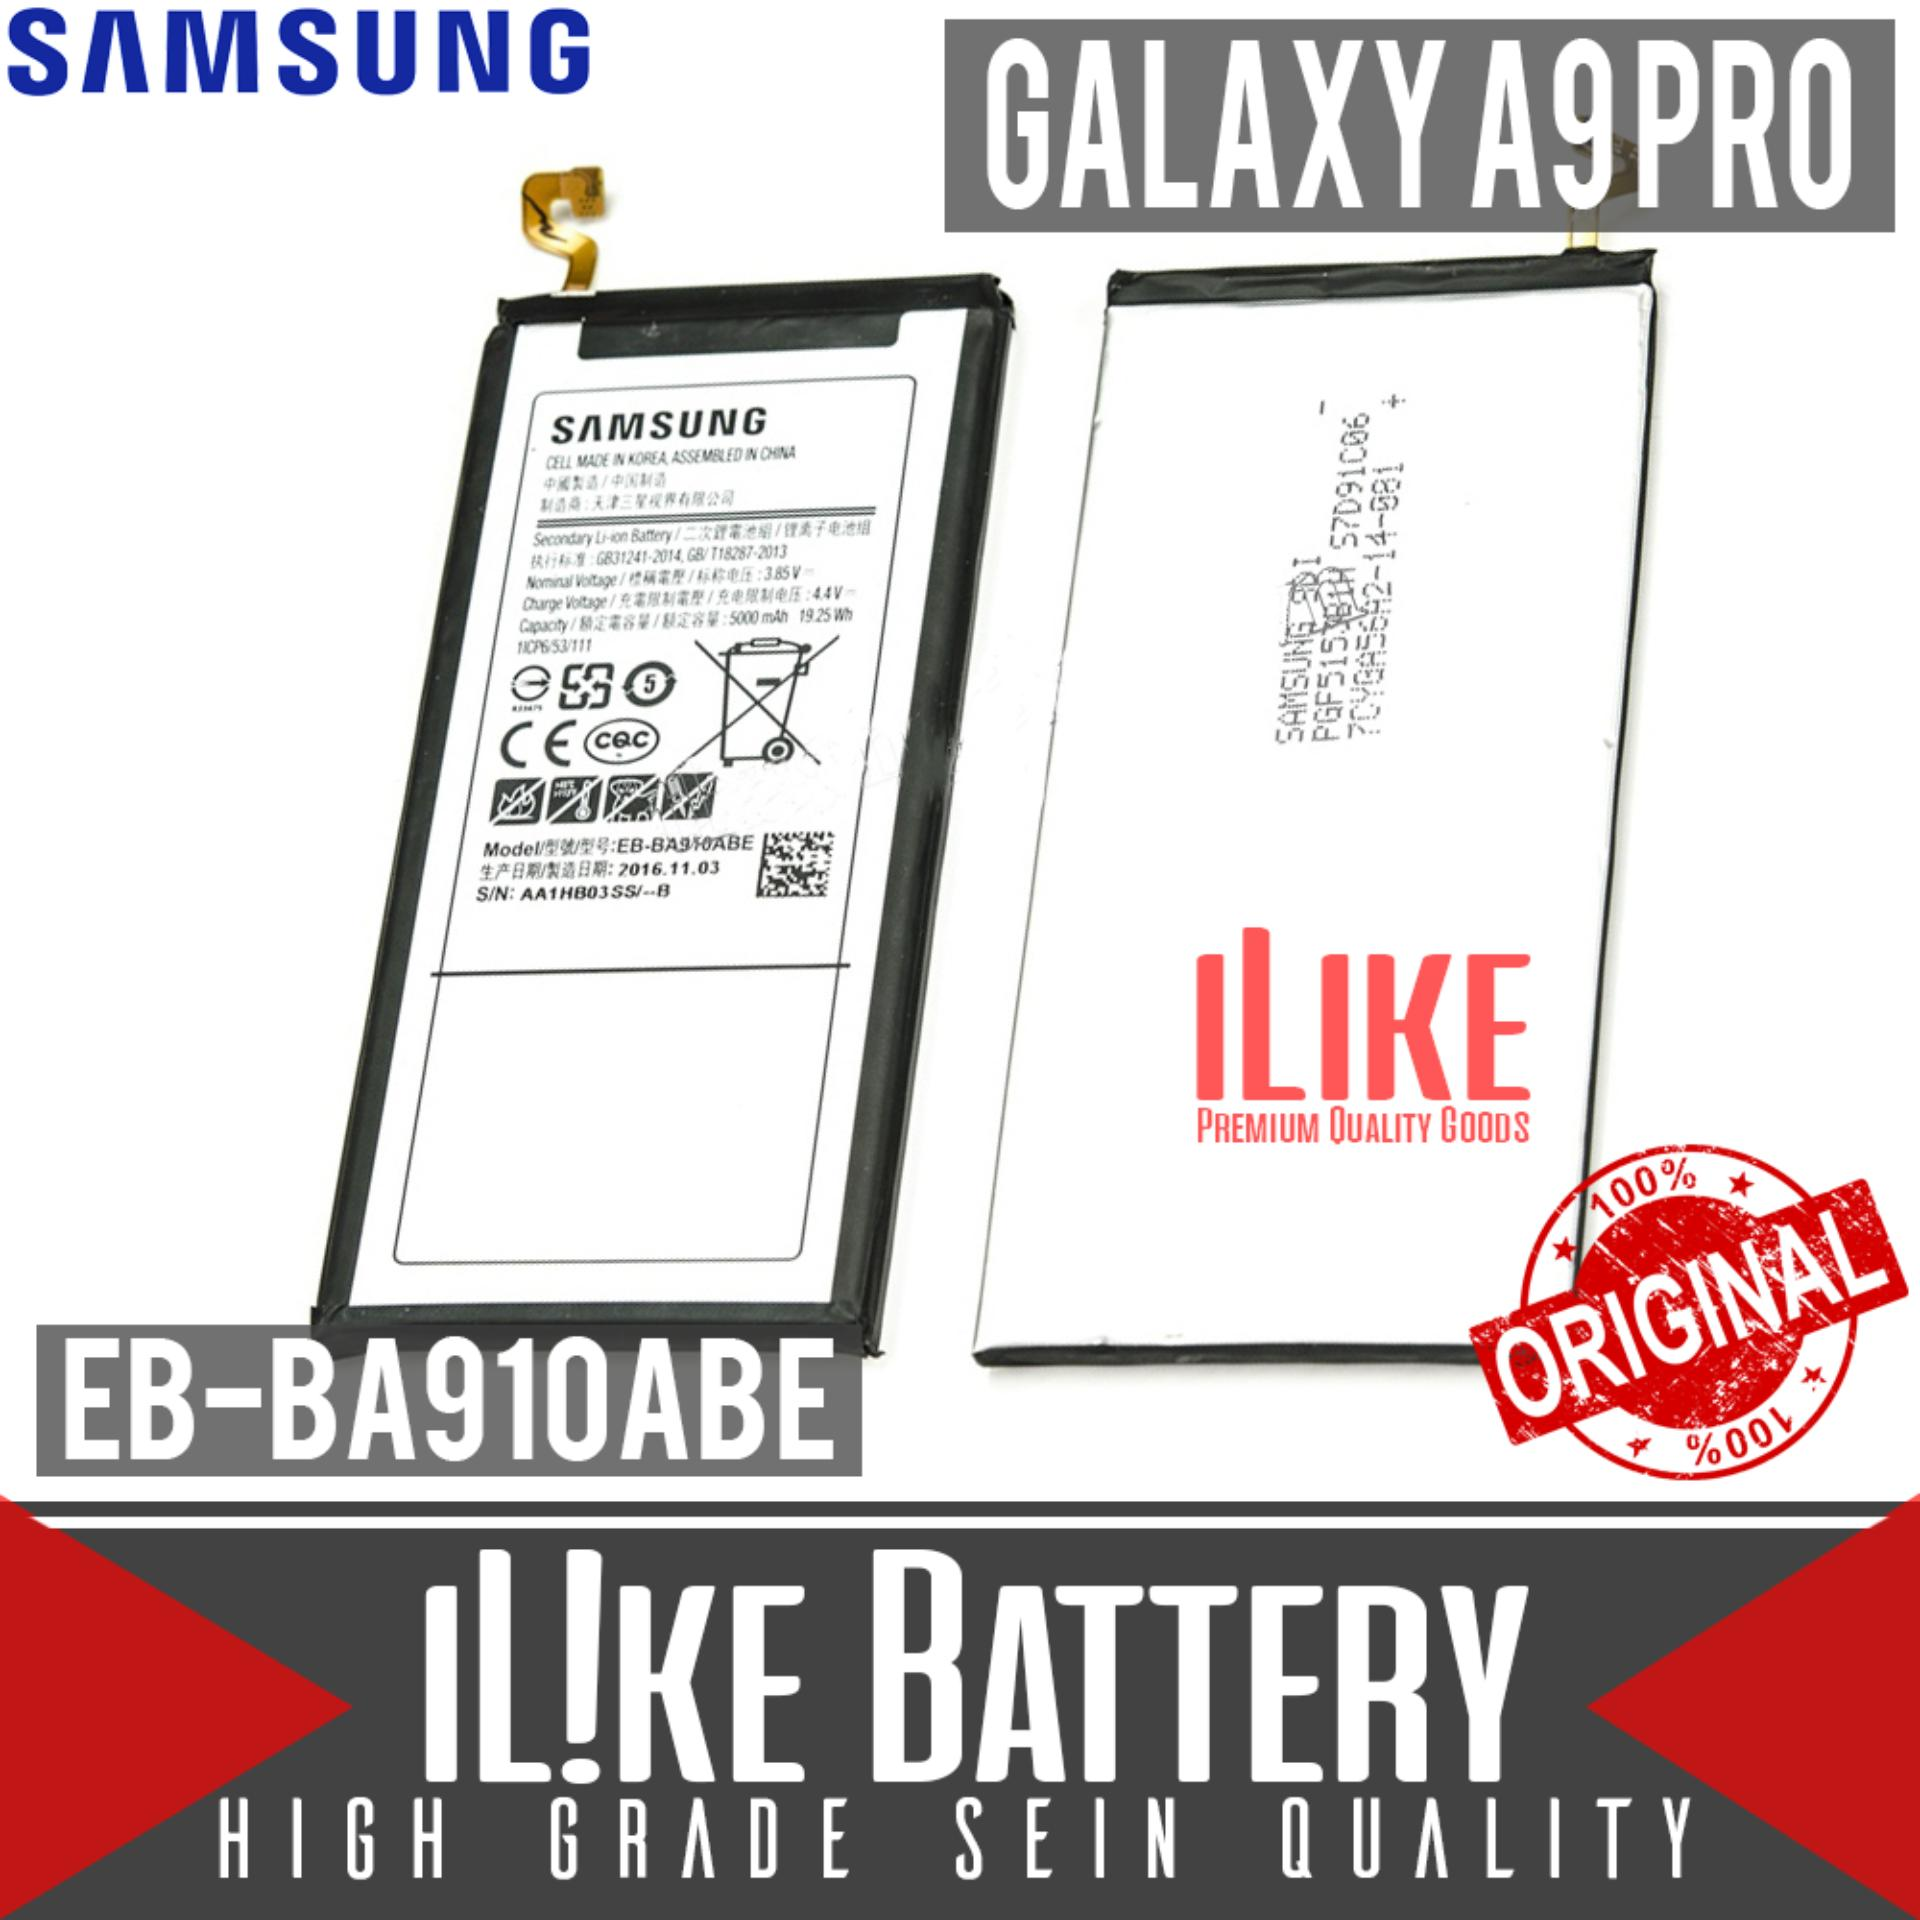 iLike Baterai Samsung Galaxy A9 Pro Premium High Grade SEIN Quality Battery